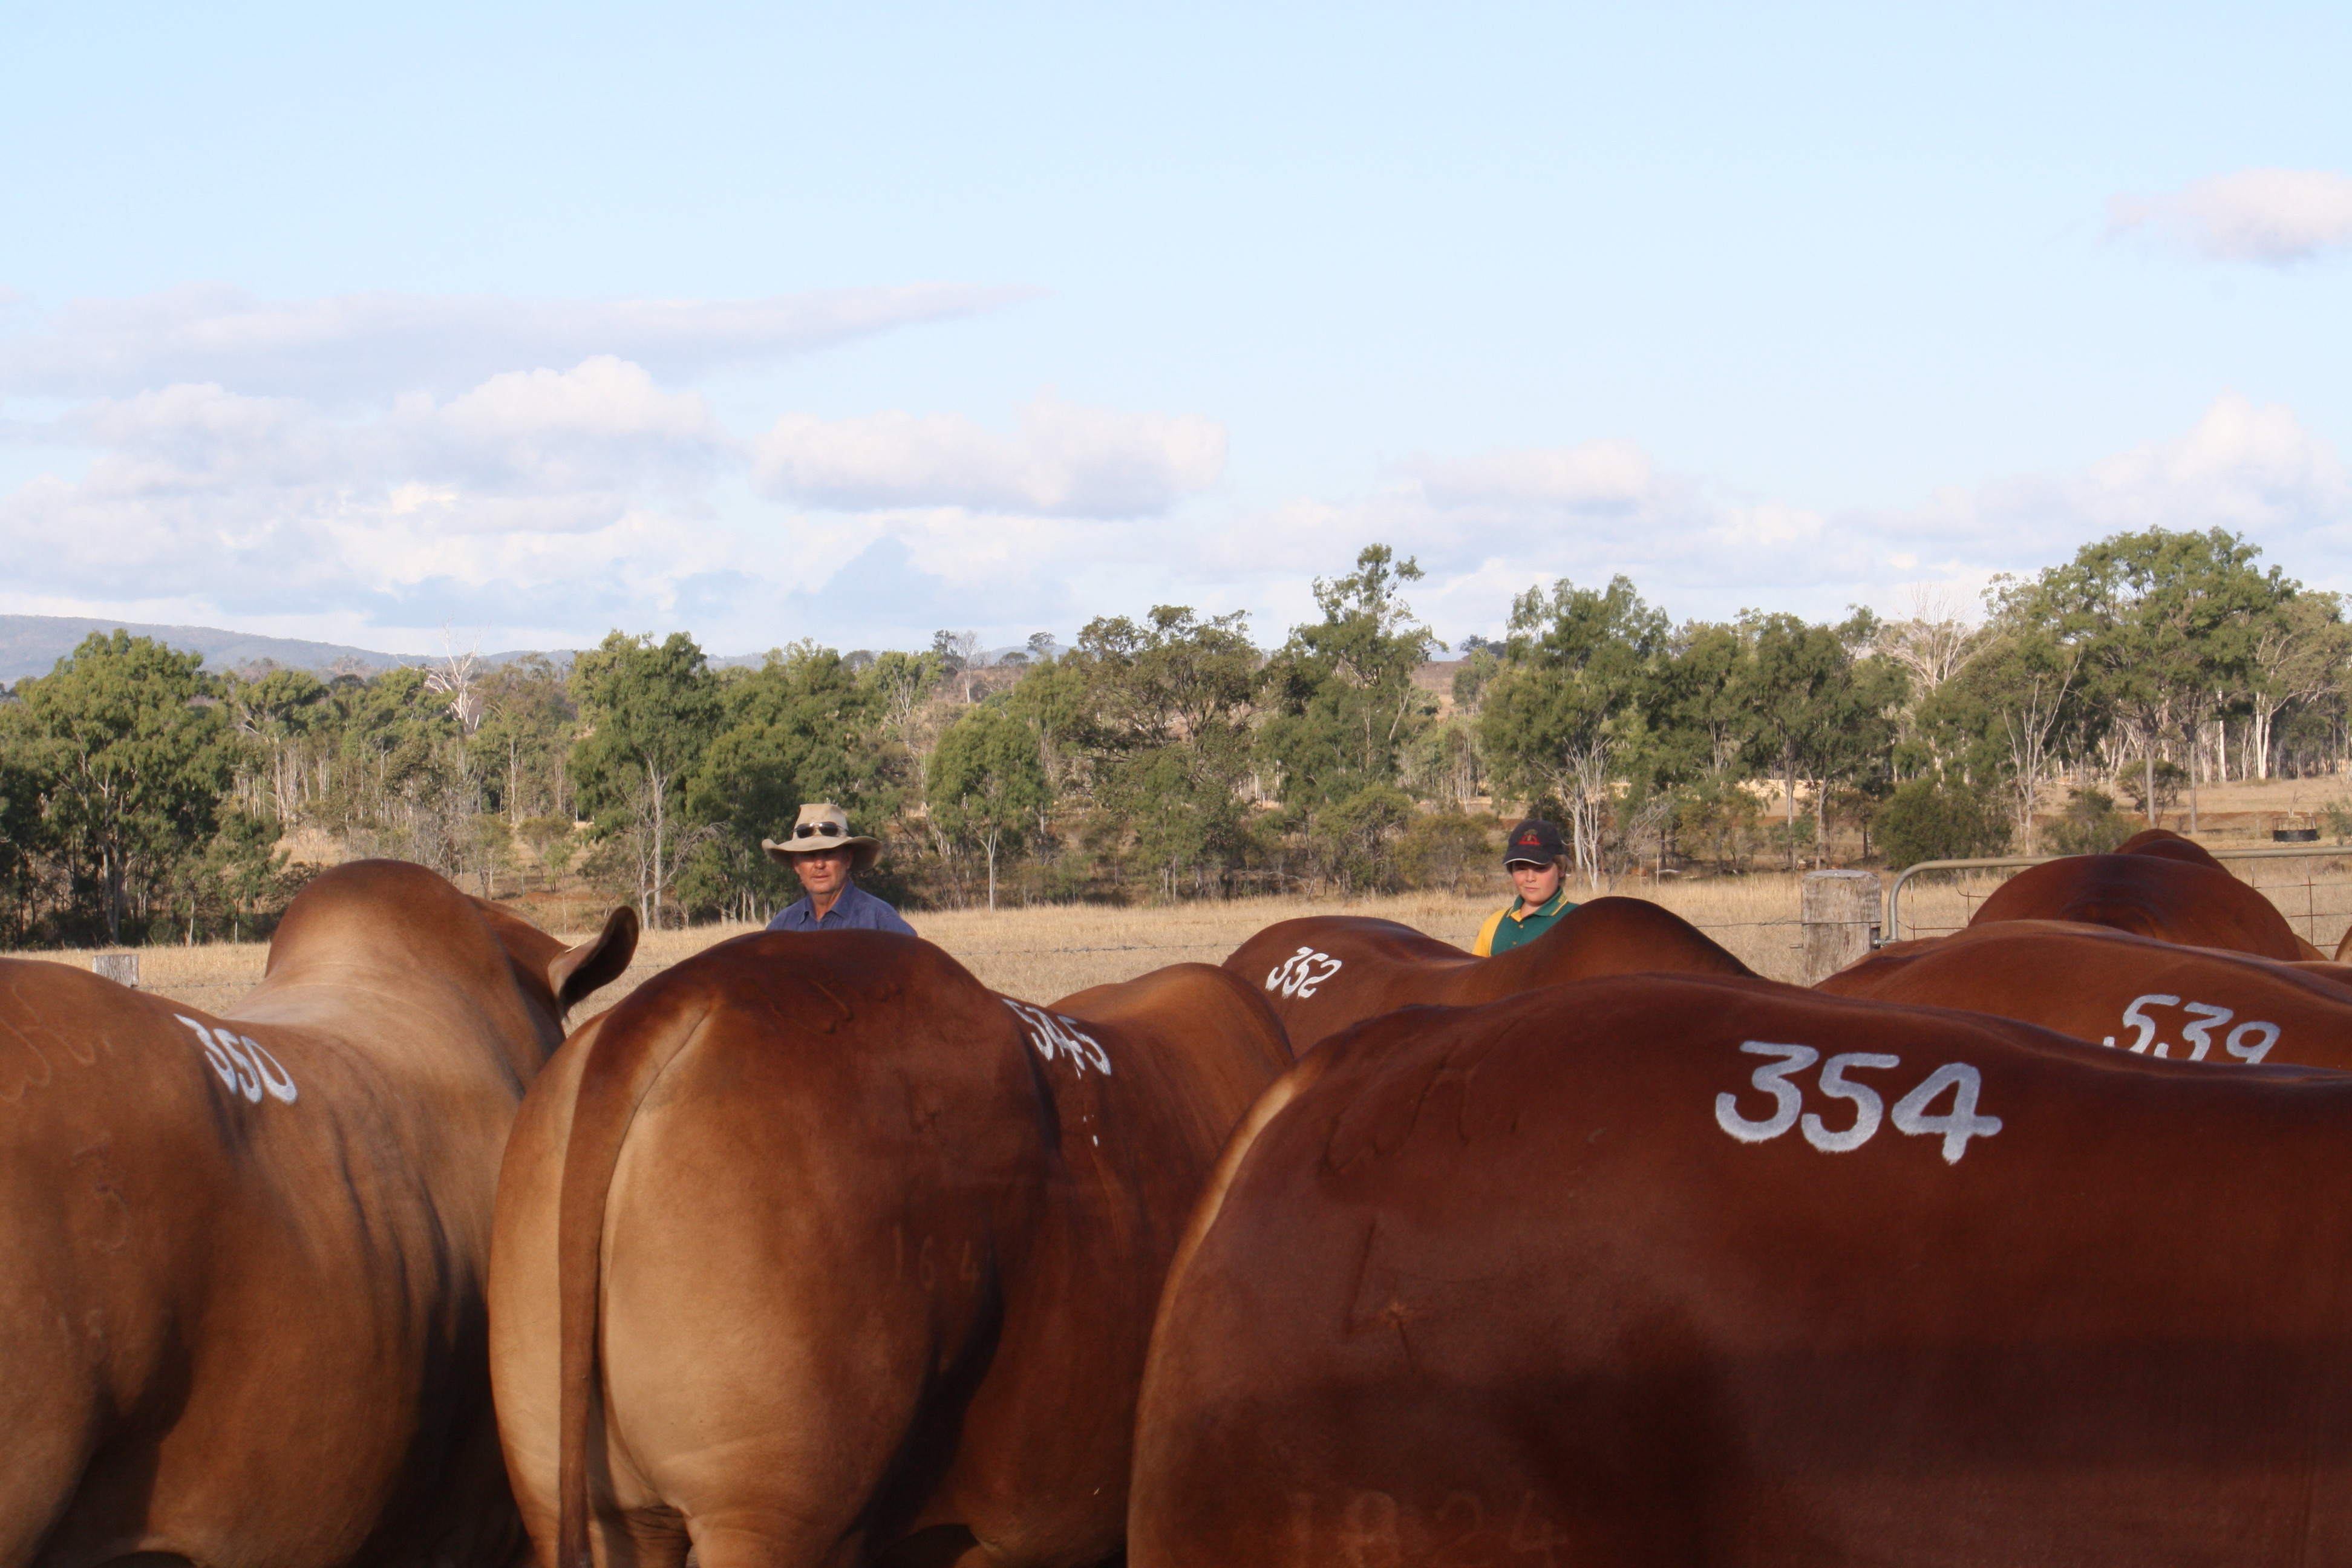 bulls for sale paint branded DN bulls 2015